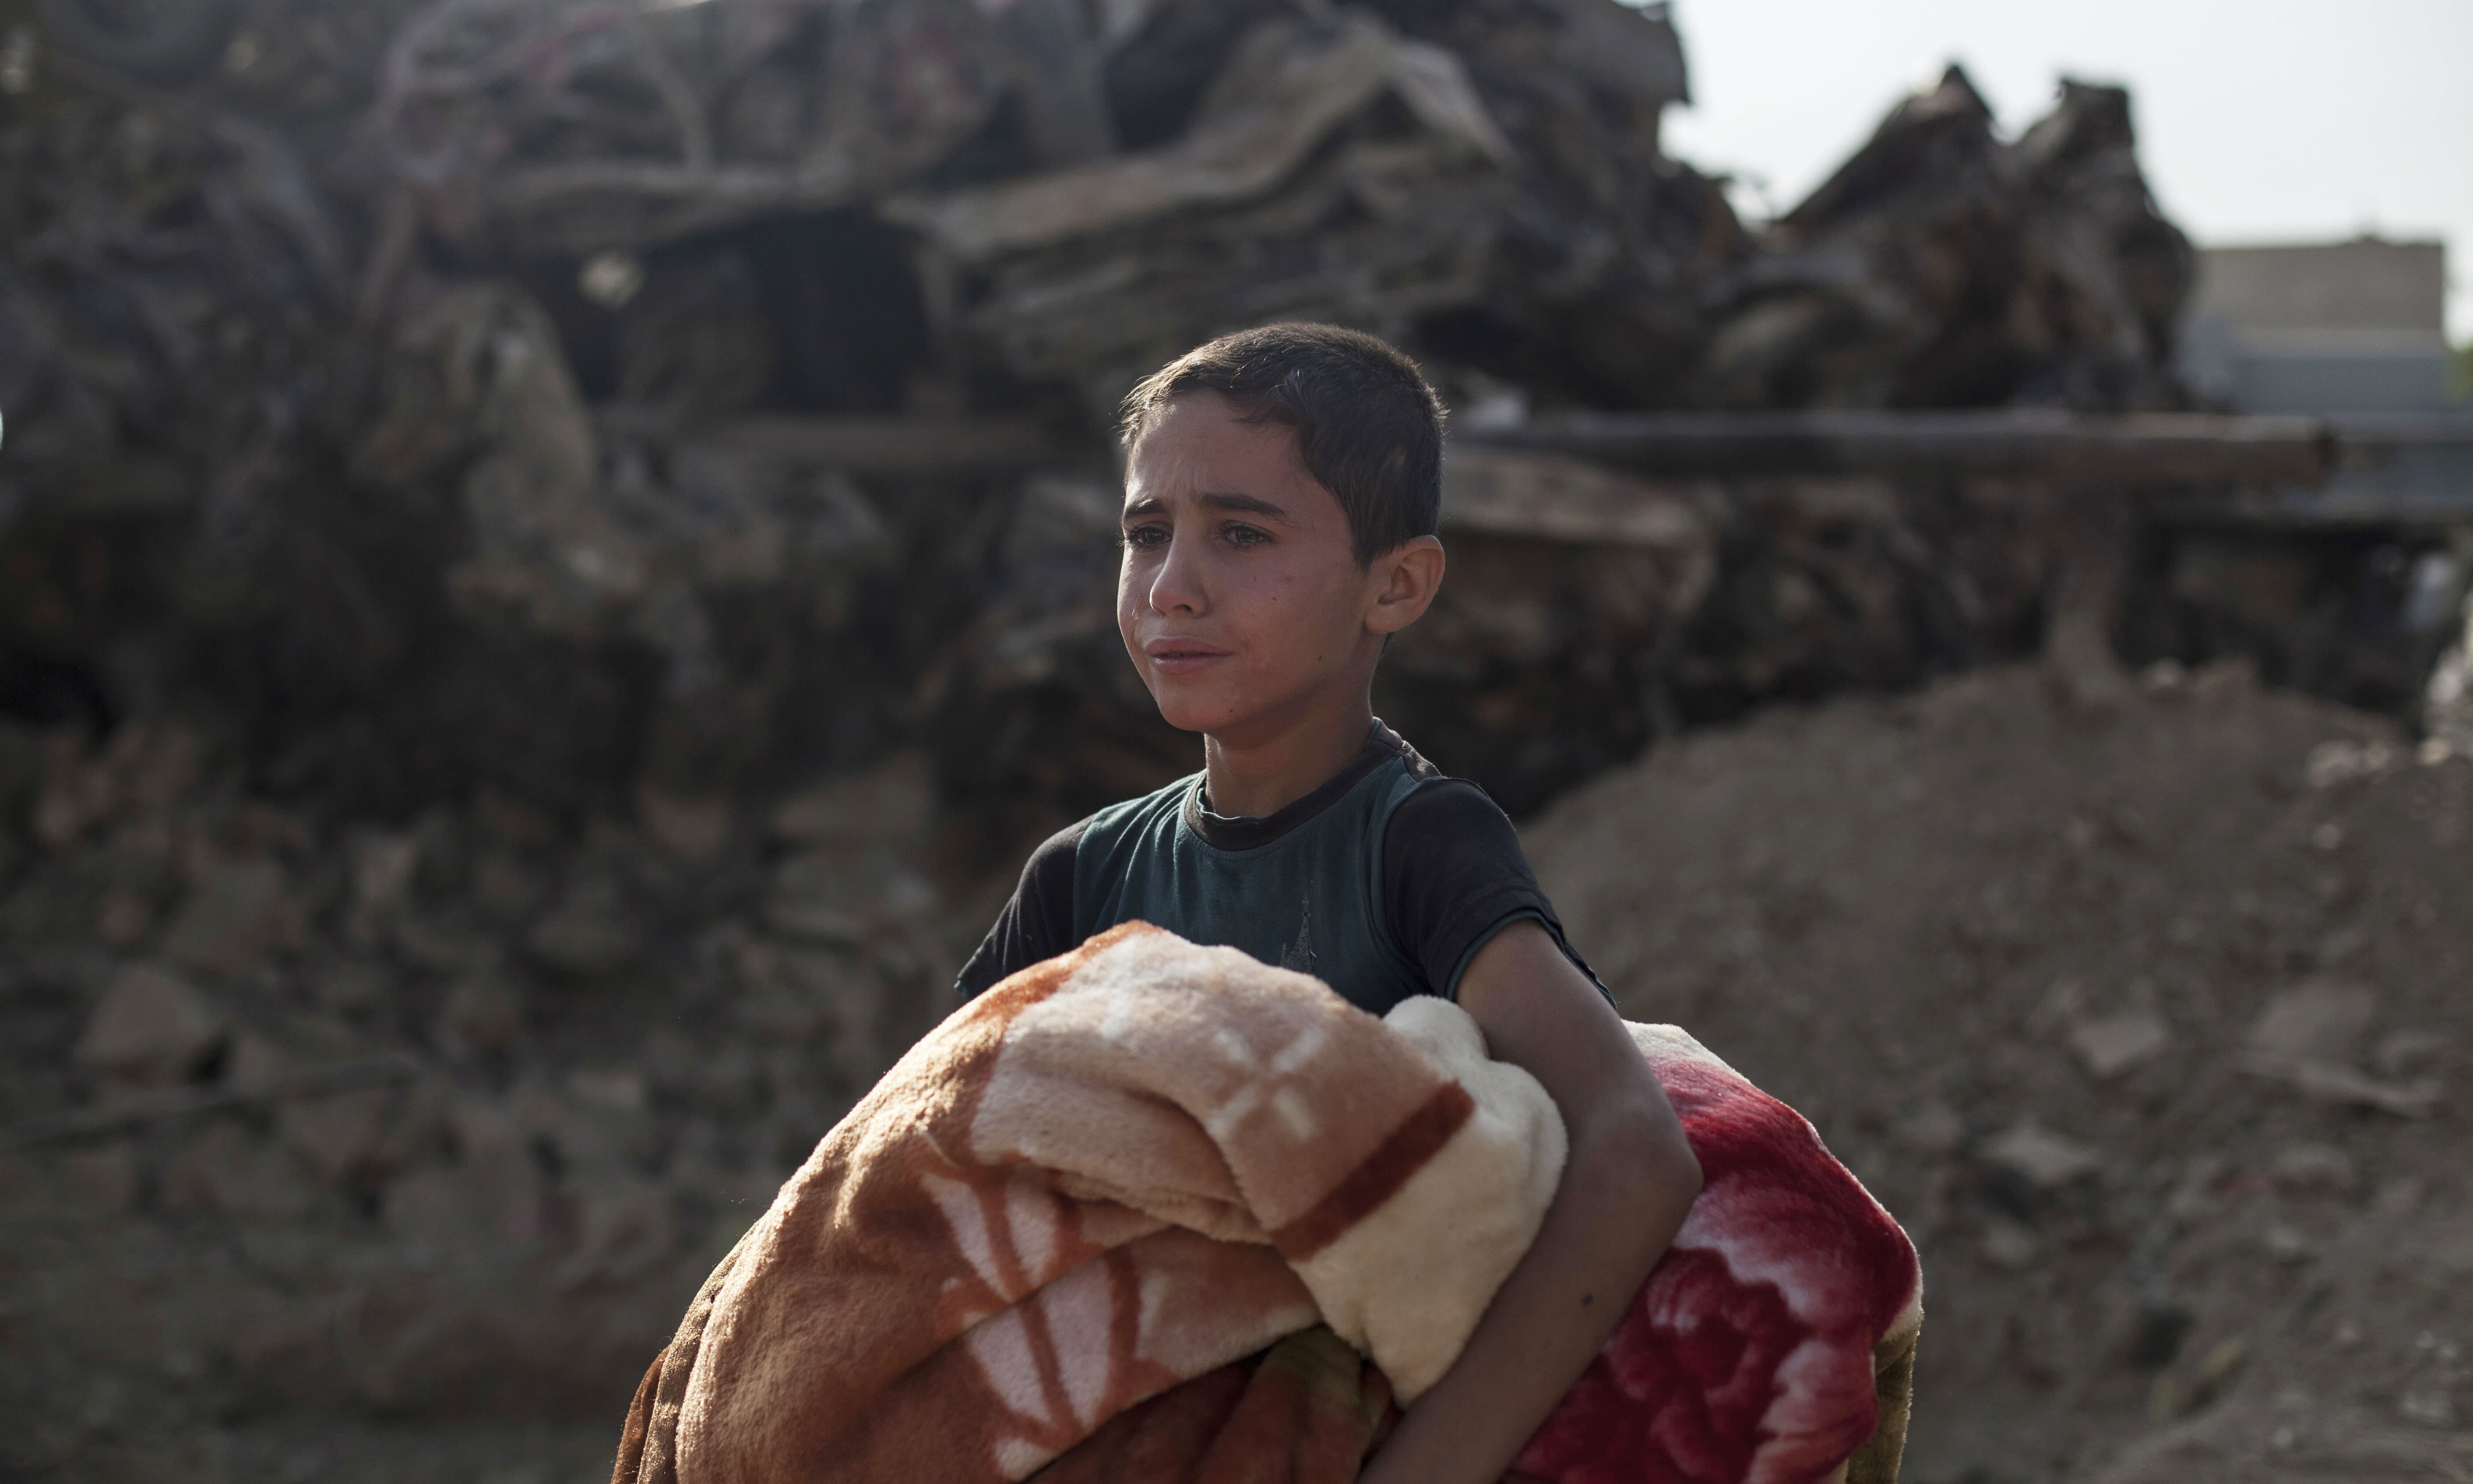 Osama Younes cries as the body of his 15-year-old sister Sana is exhumed for forensic investigation in Mosul.  —AP